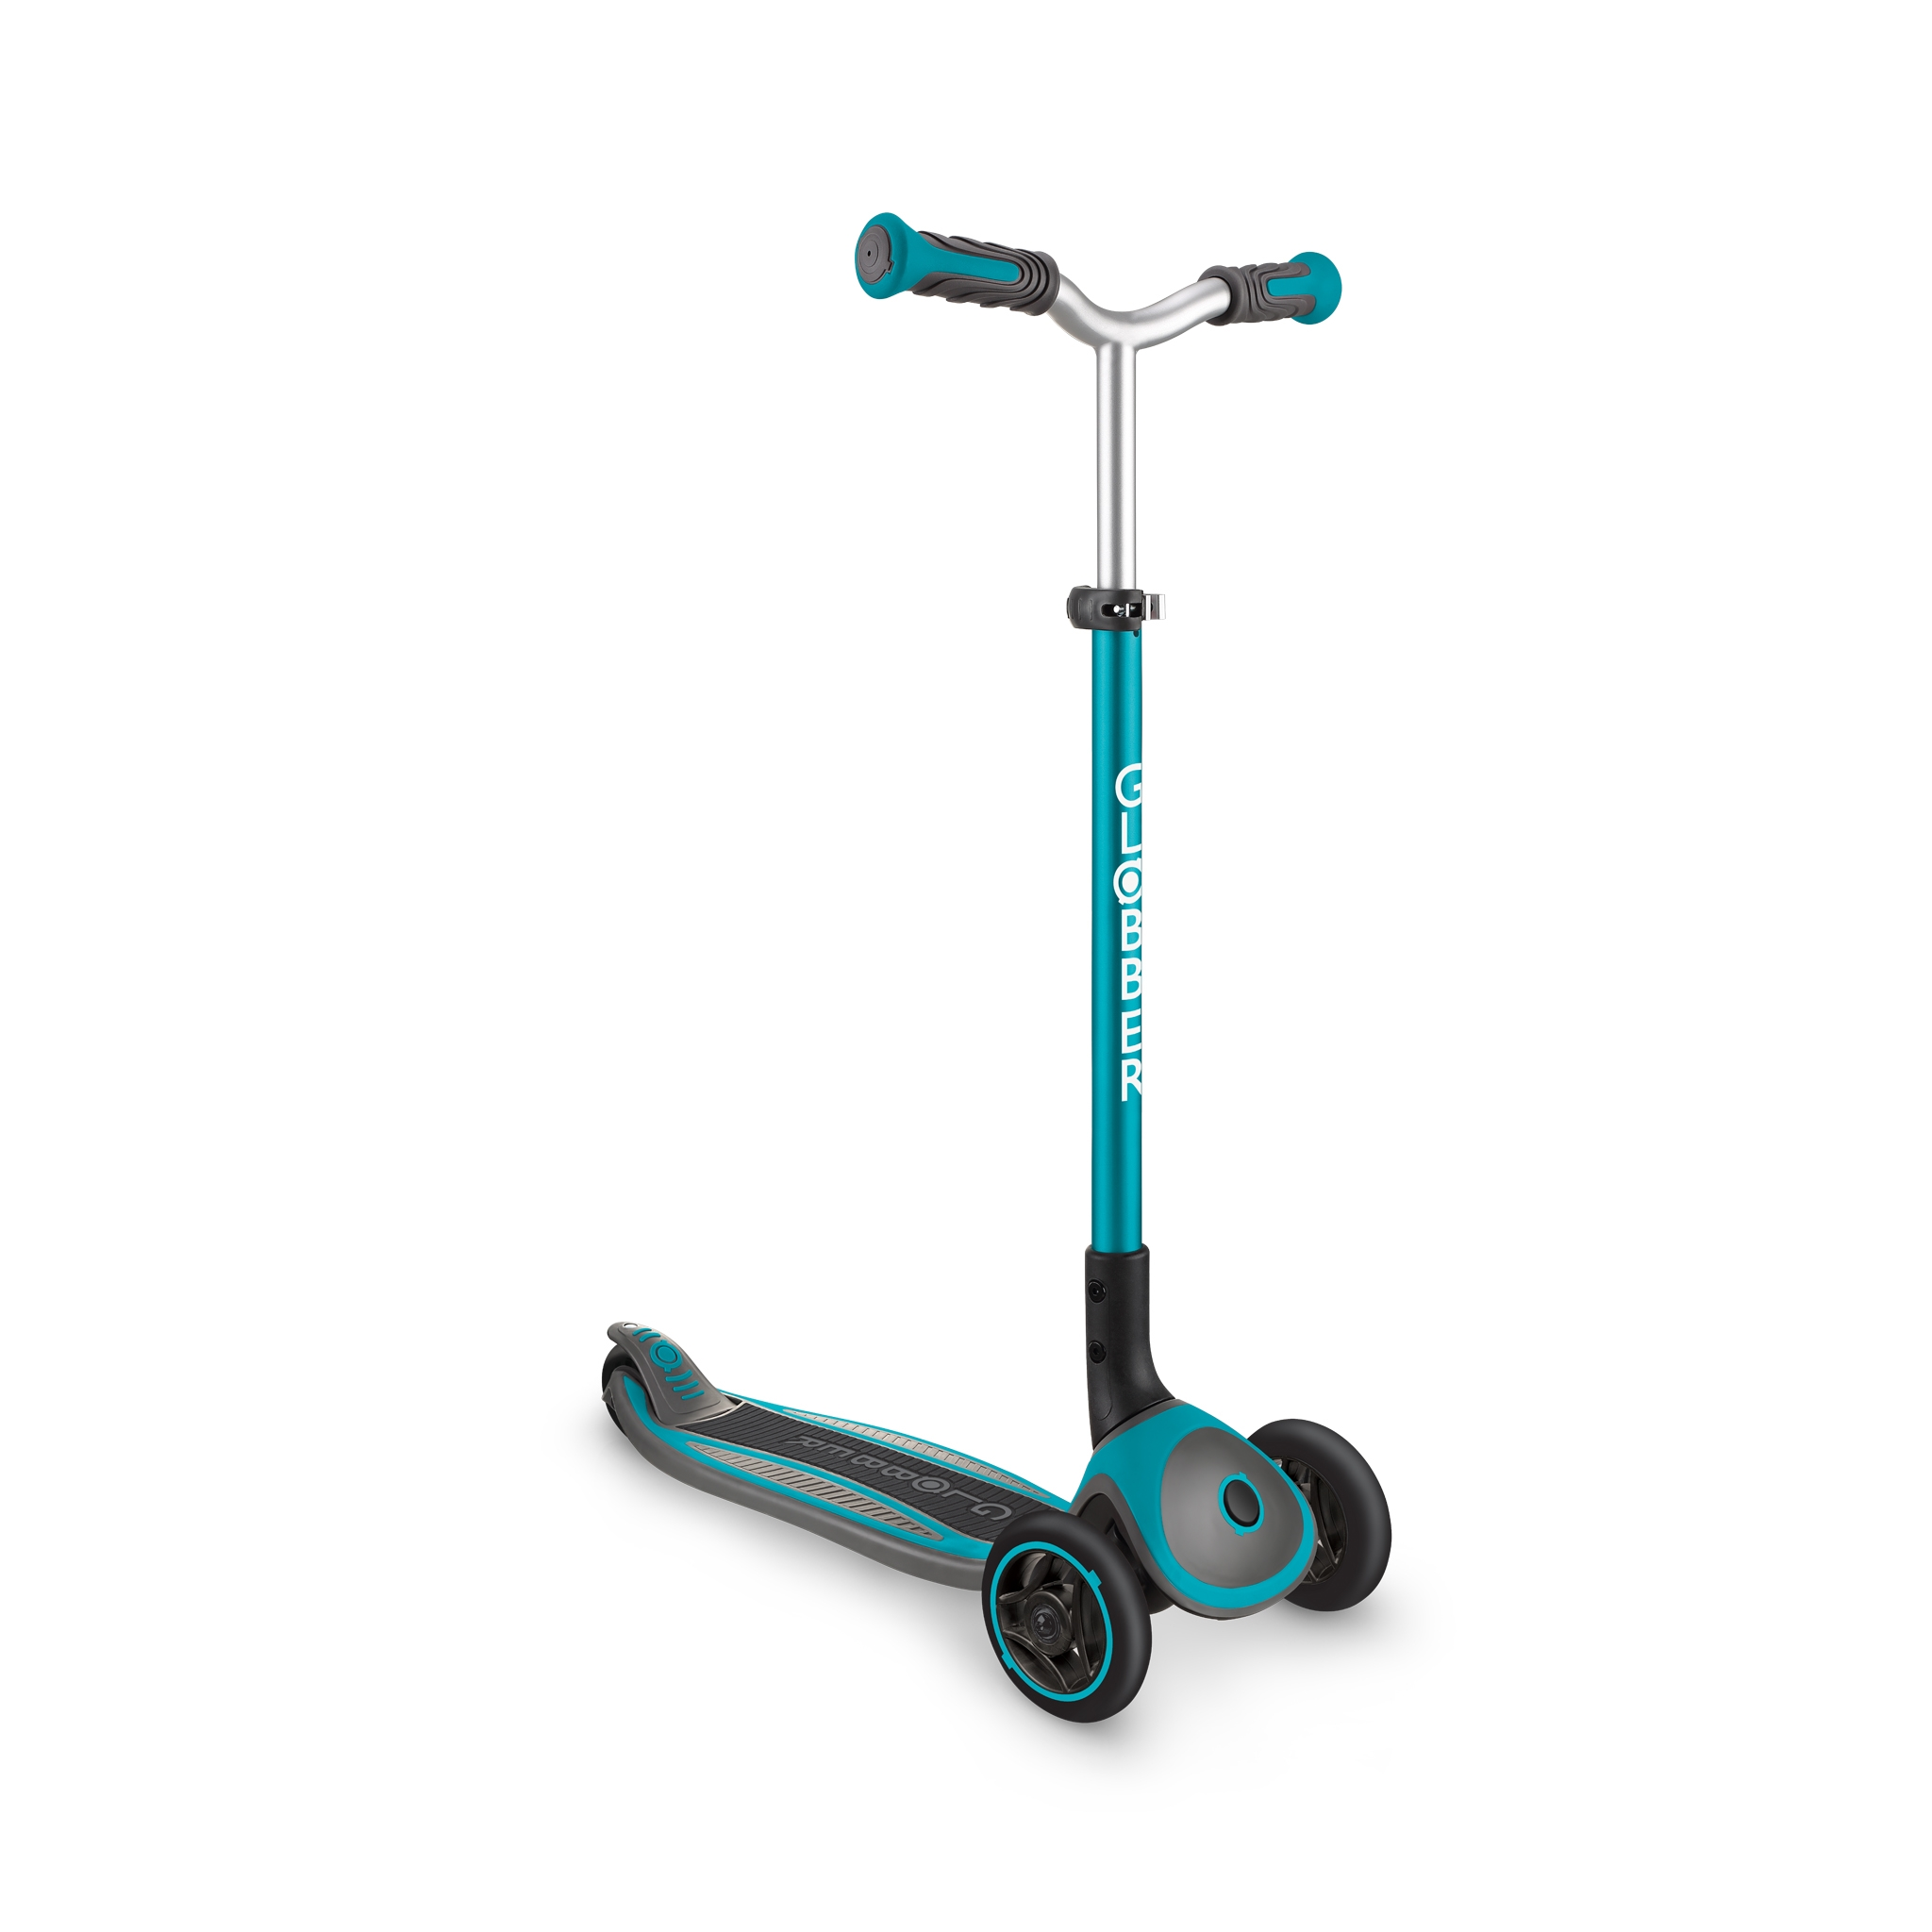 Globber-MASTER-premium-3-wheel-foldable-scooters-for-kids-aged-4-to-14_teal 4